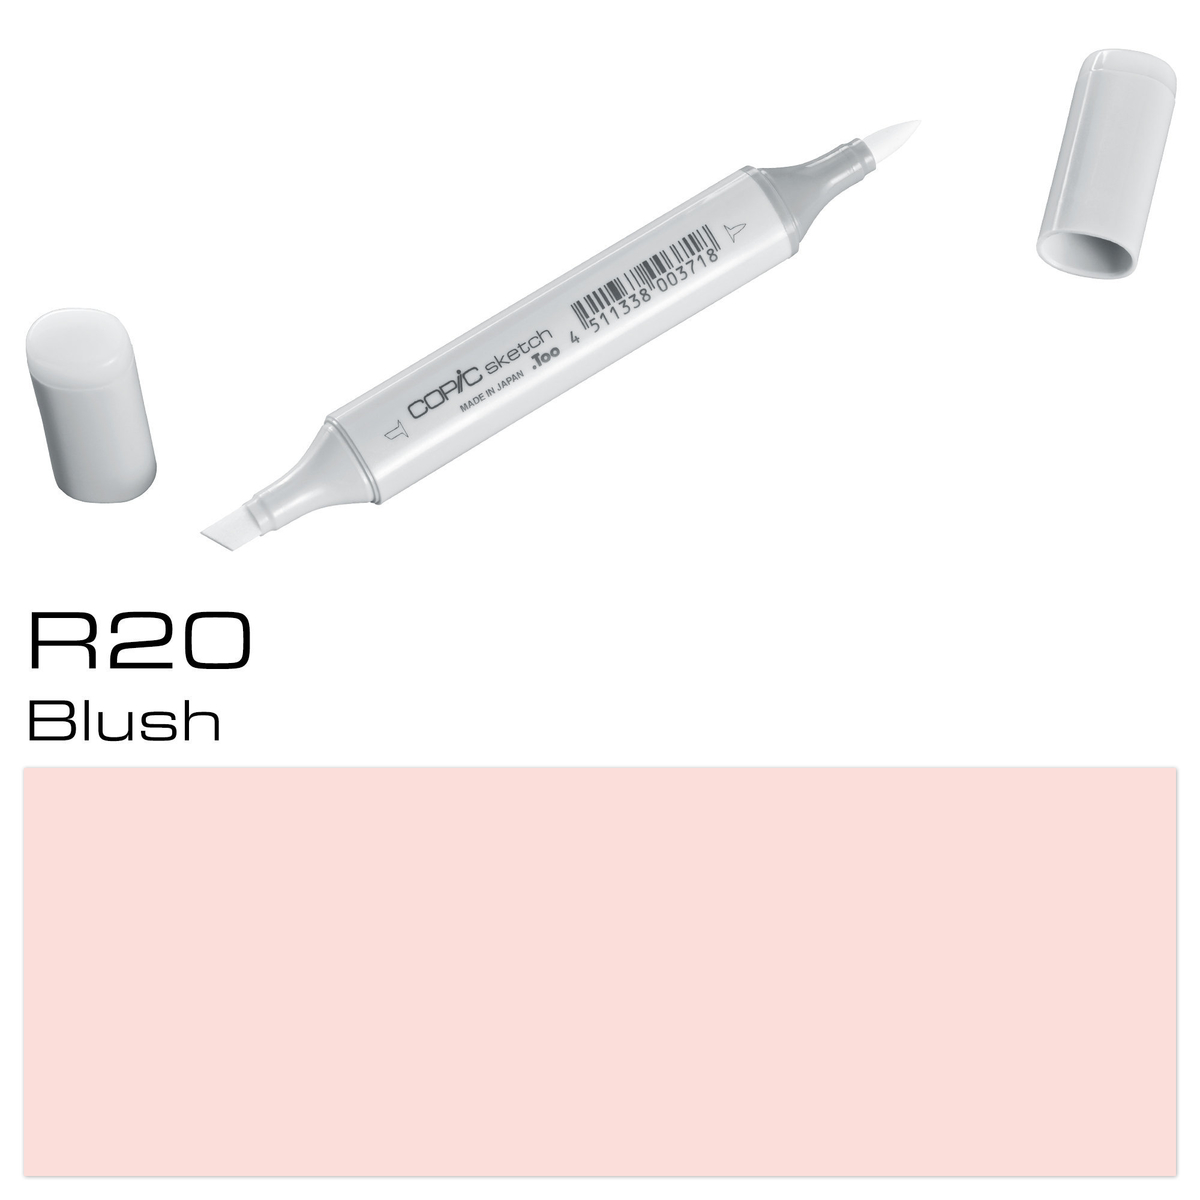 Copic Sketch R 20 blush